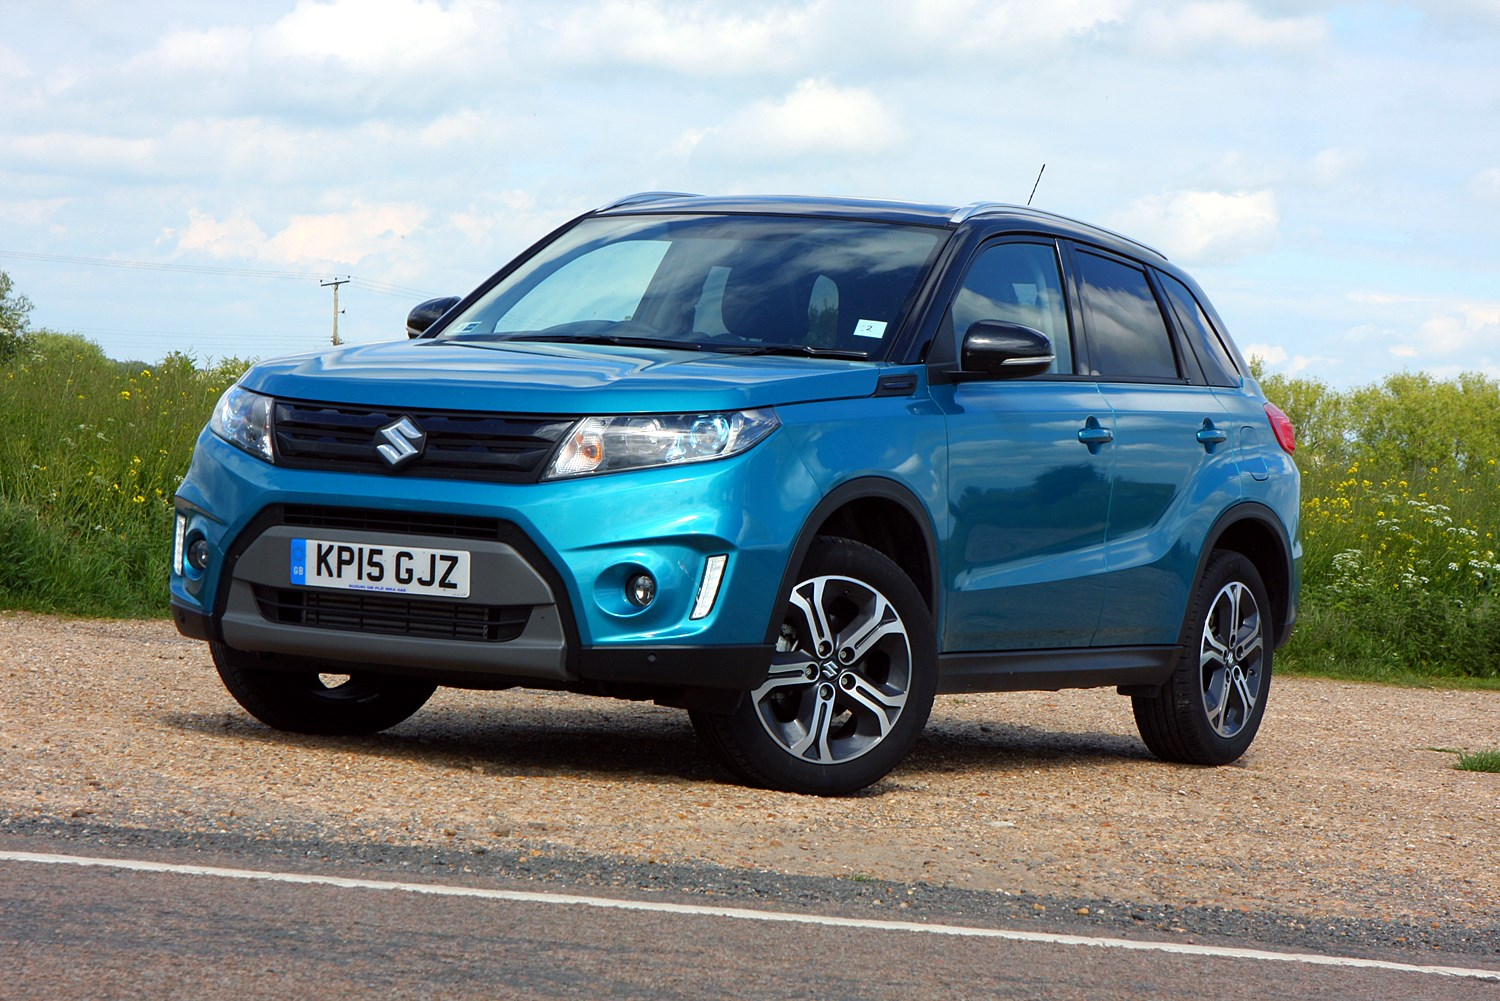 suzuki vitara 4x4 review 2015 parkers. Black Bedroom Furniture Sets. Home Design Ideas